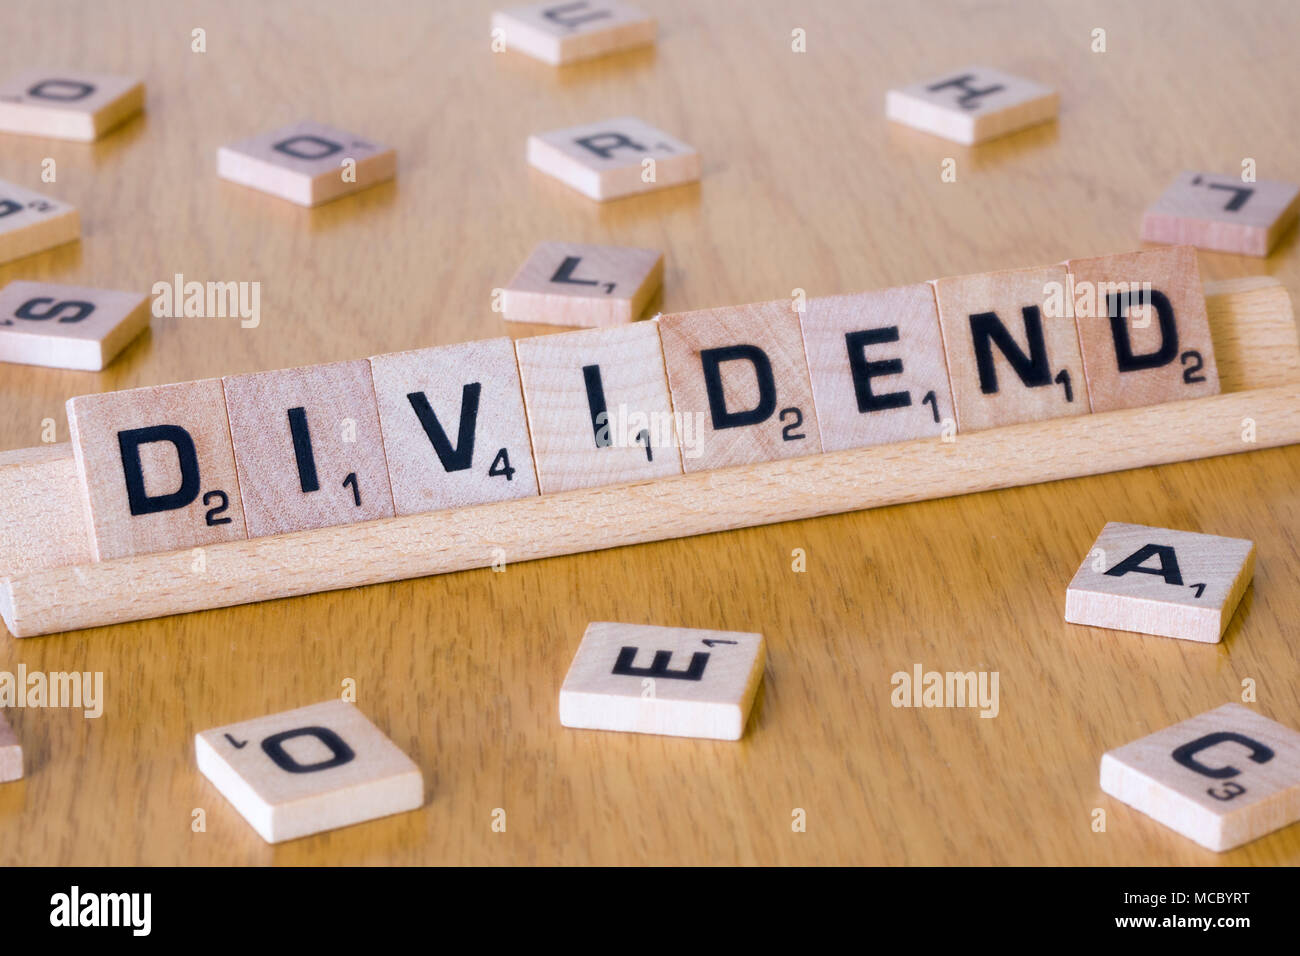 Scrabble letters spelling out the word Dividend - Stock Image